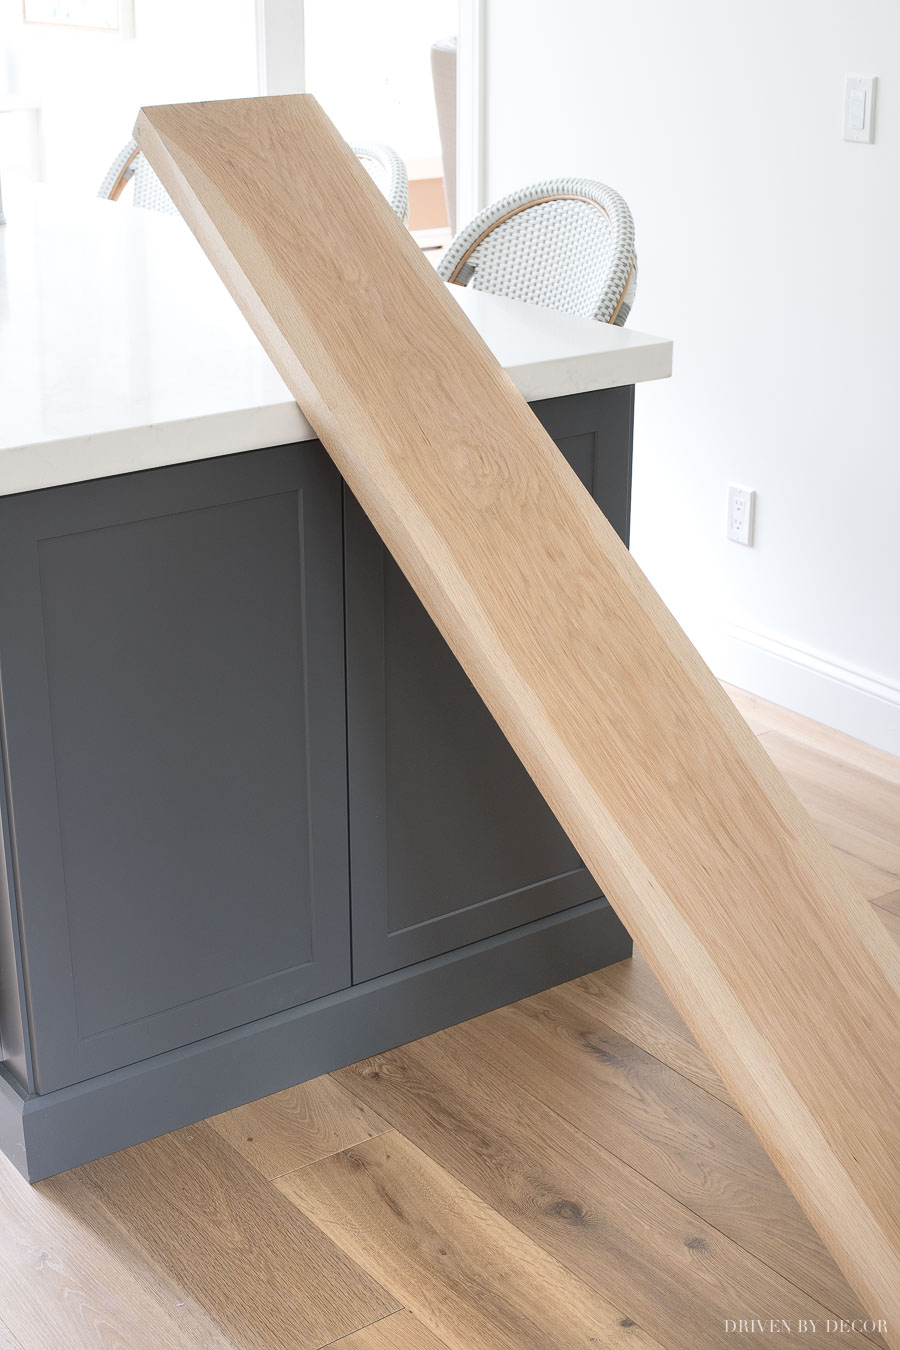 The white oak boards used to create the floating corner shelves in our kitchen